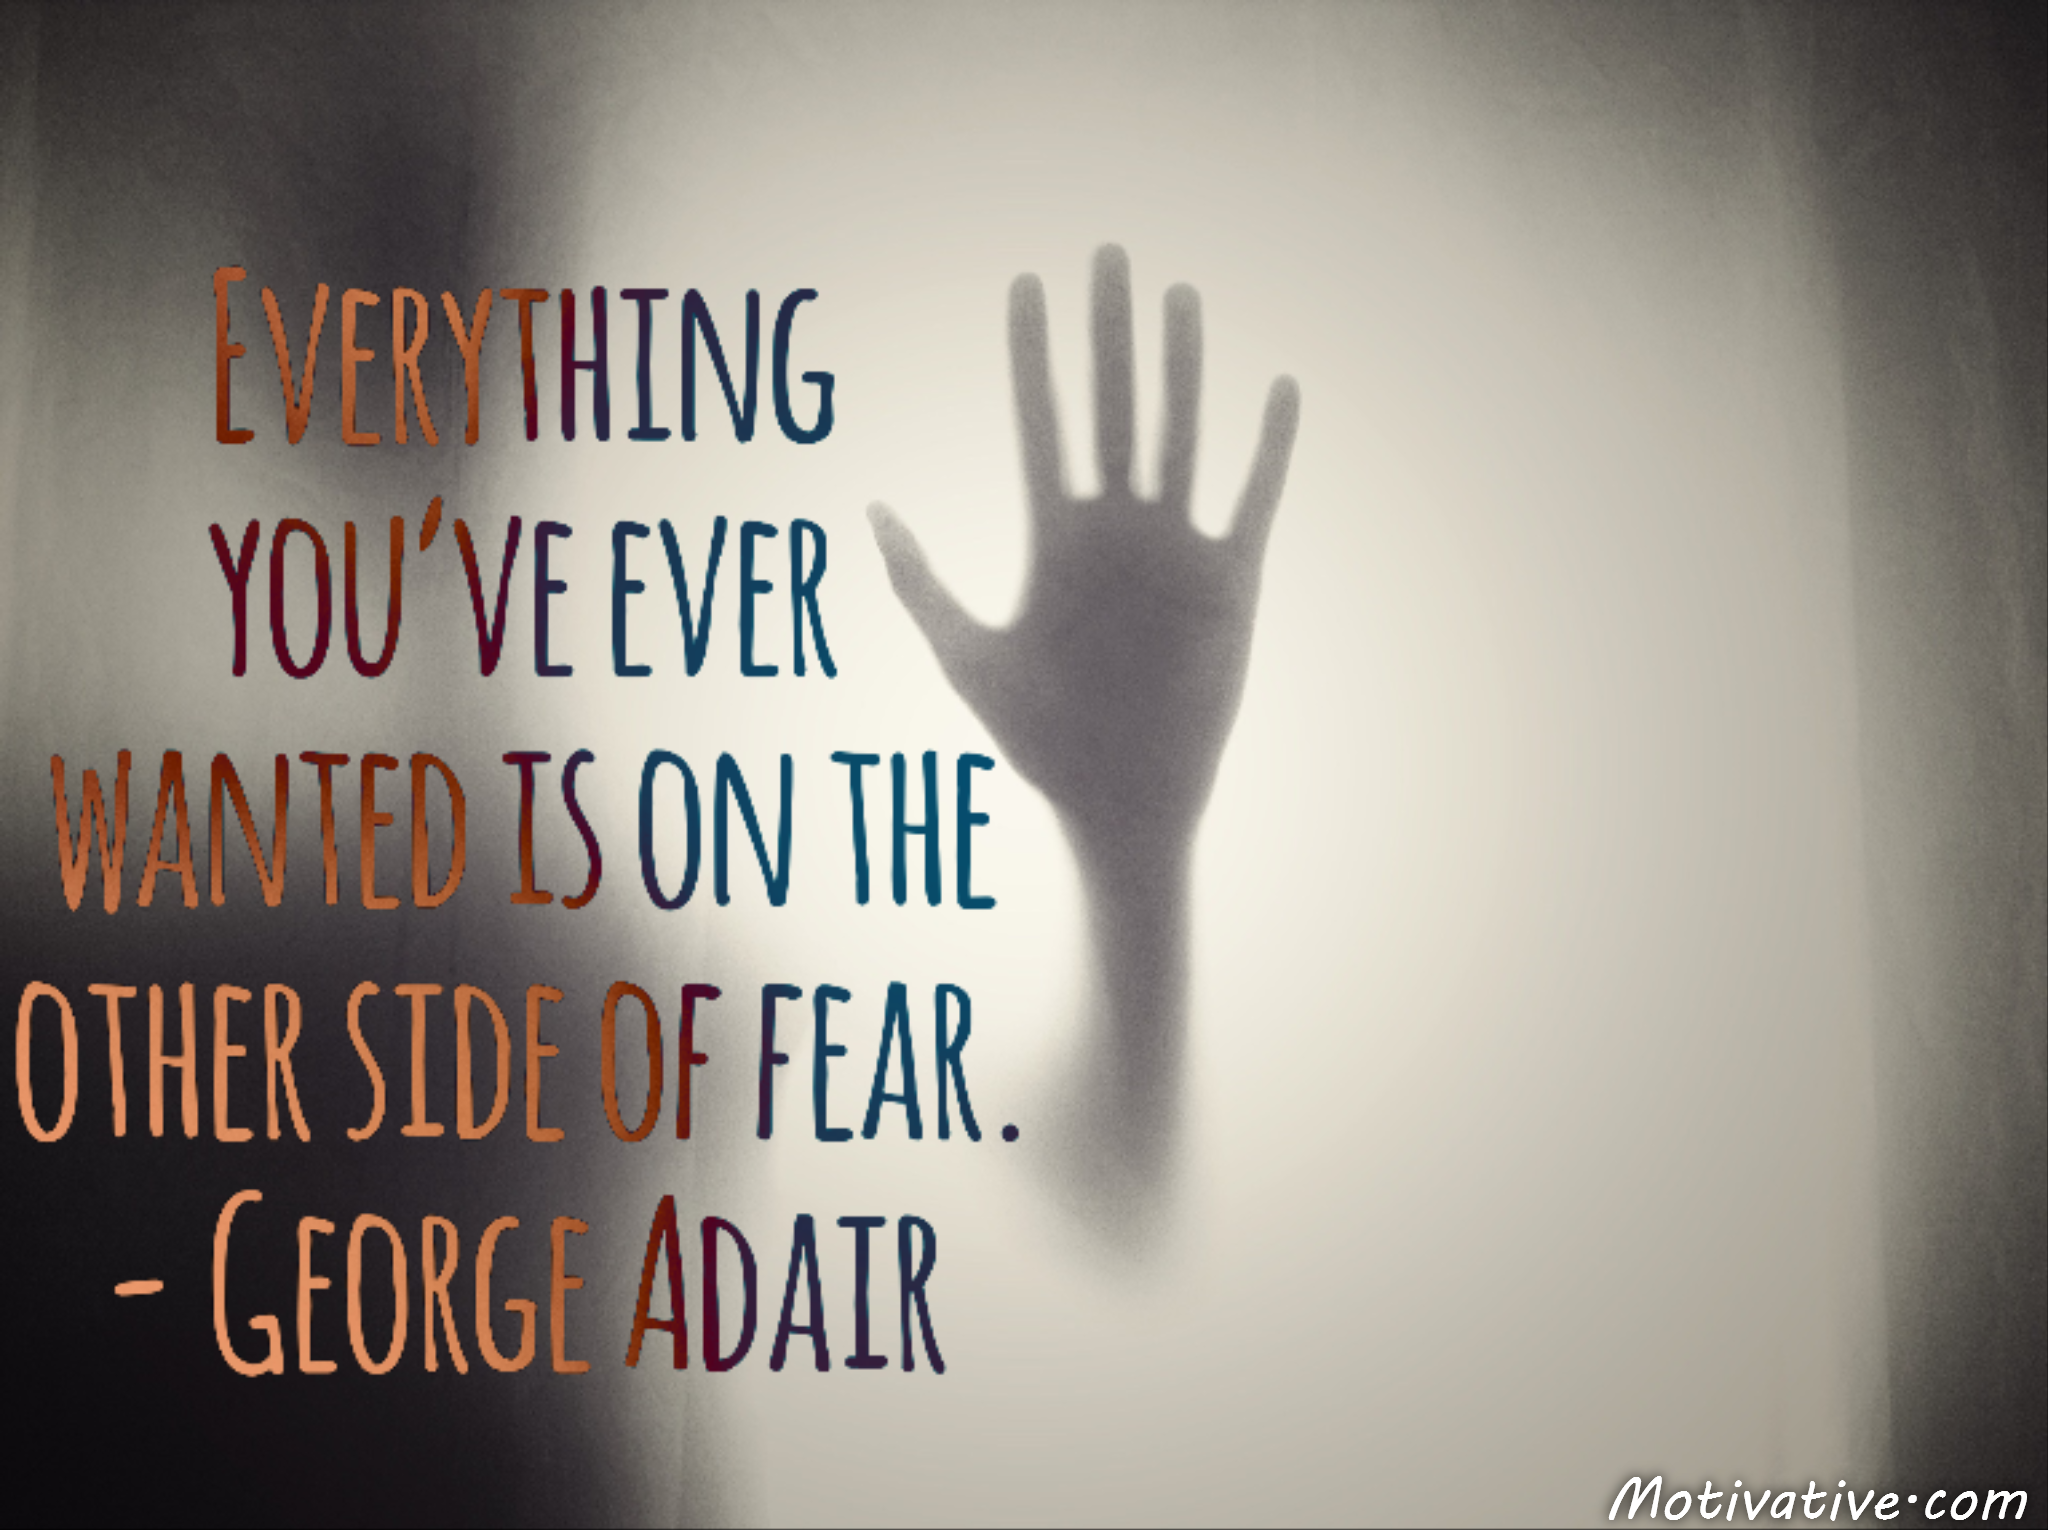 Everything you've ever wanted is on the other side of fear. – George Adair